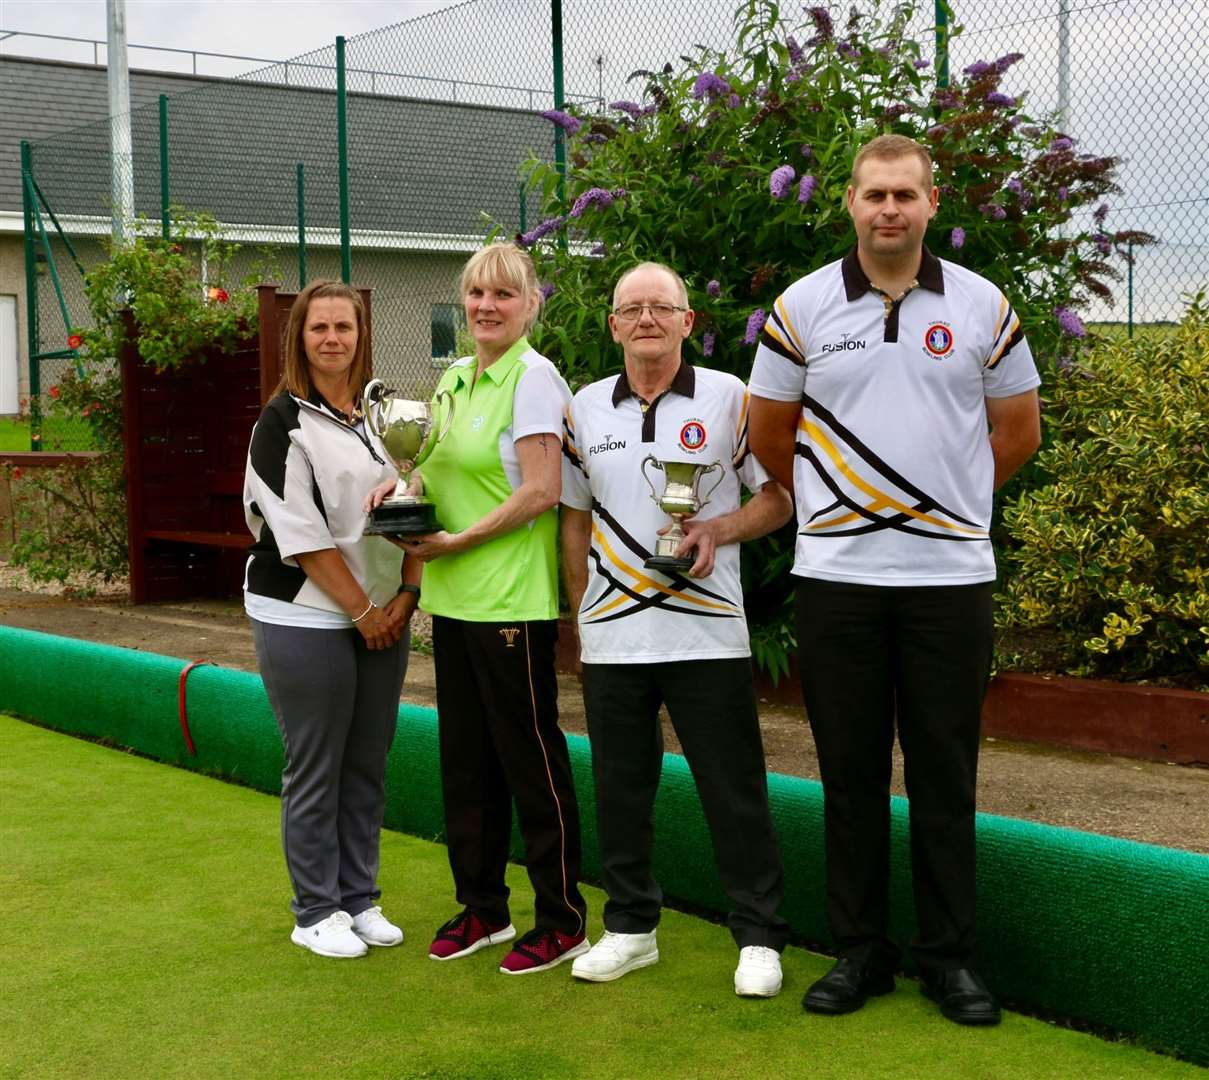 Marina Bain, Lorna Cormack, Ronnie Bain snr and John McGill after the ladies' and gents' championships.